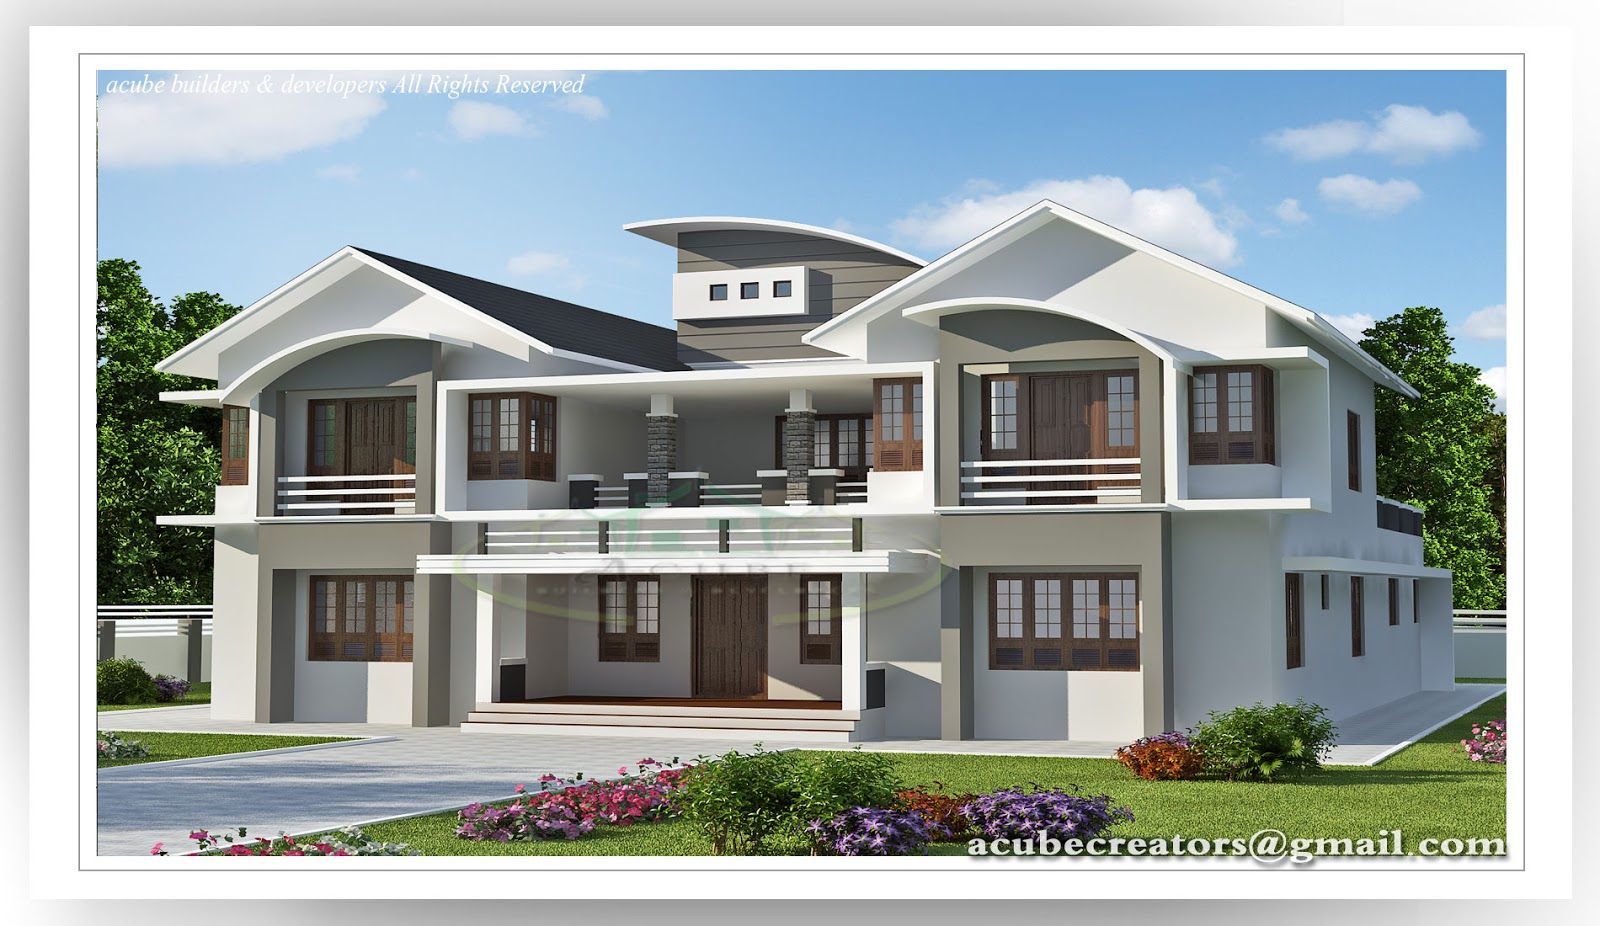 6 bedroom luxury villa design 5091 plan 149 for 6 bedroom house floor plans